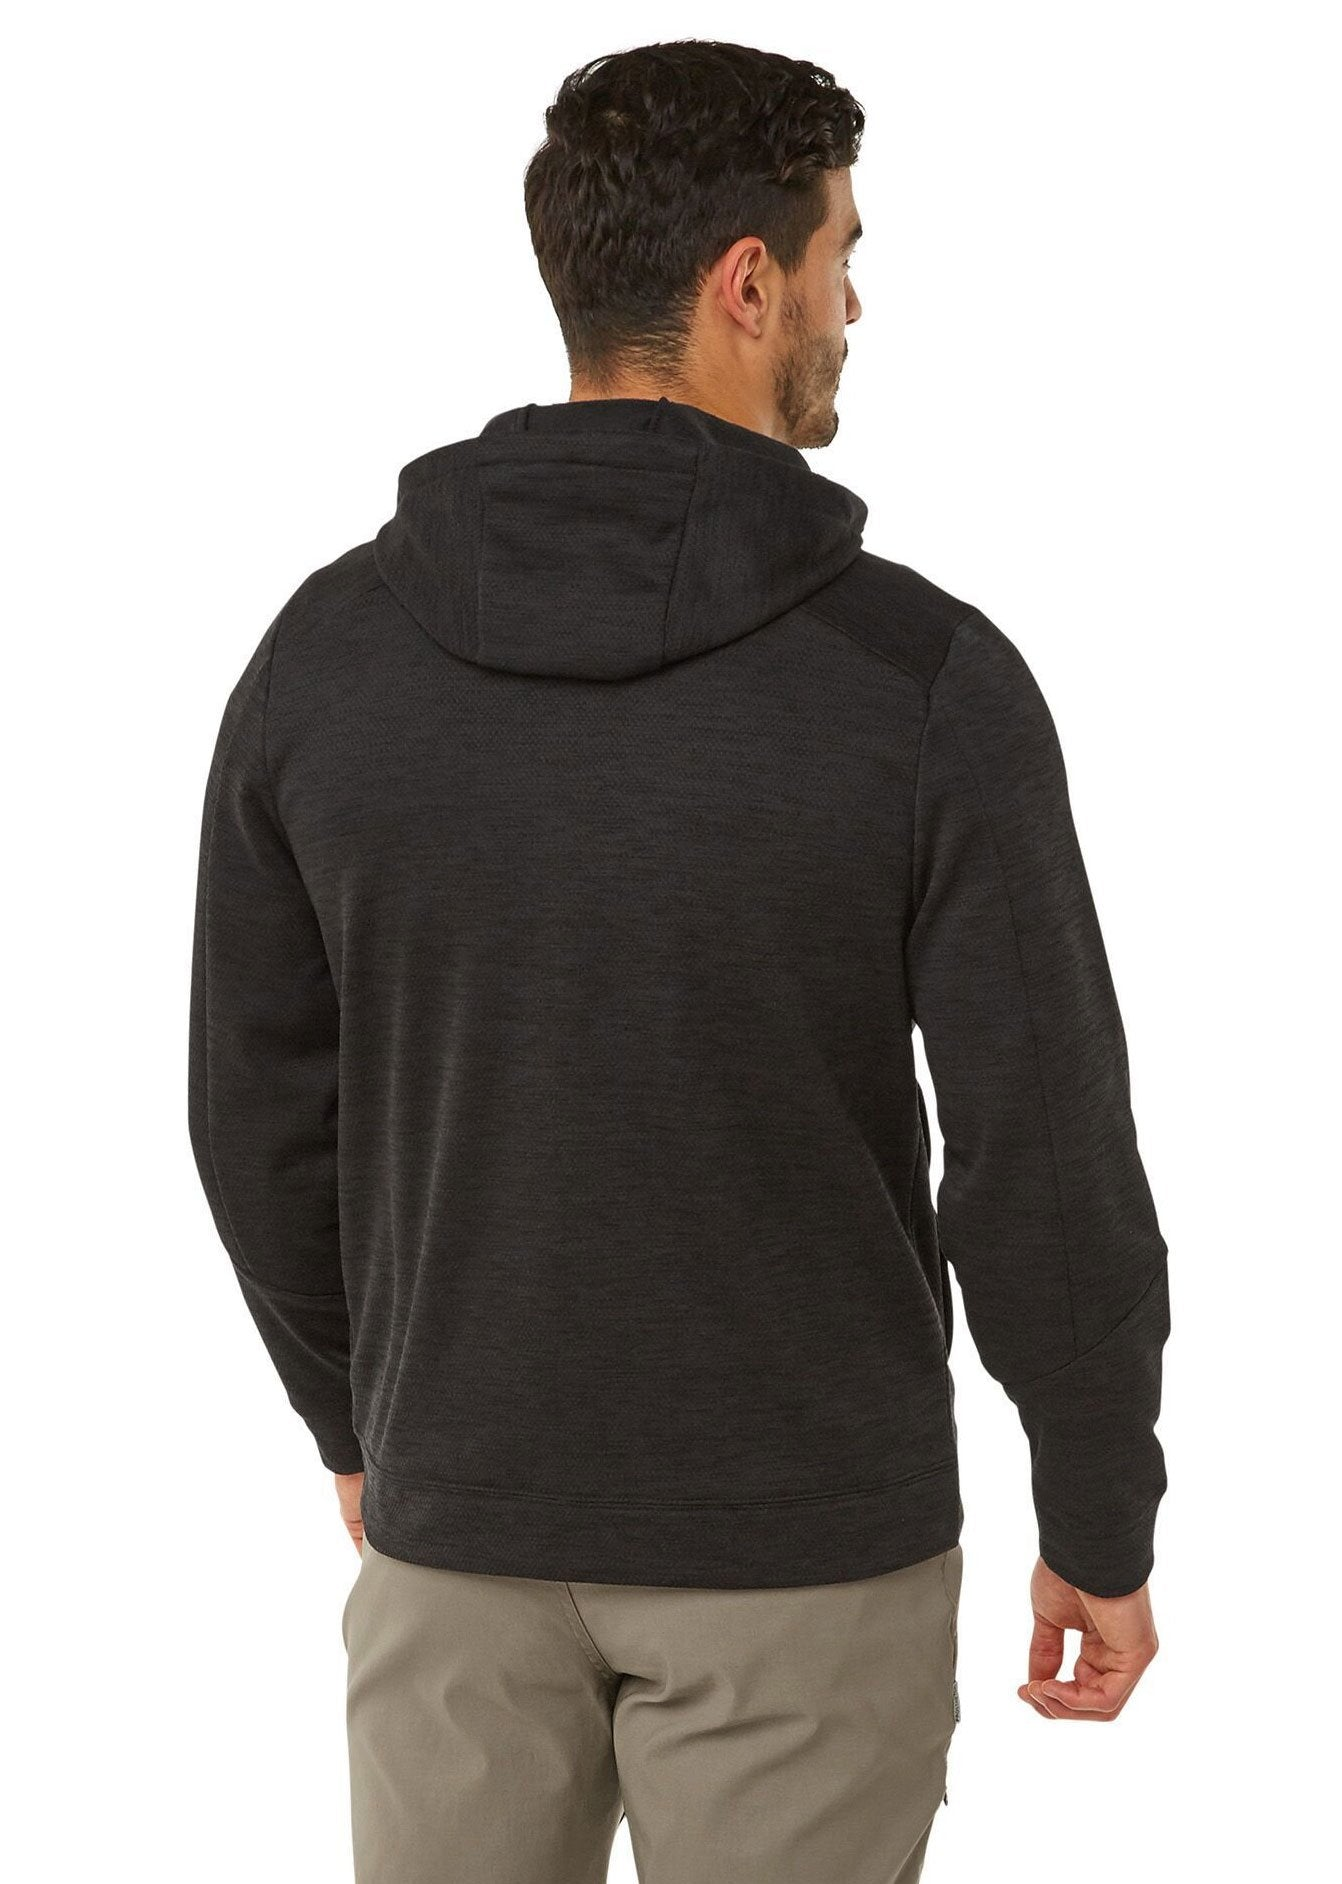 Back View Craghoppers Strata Hoodie